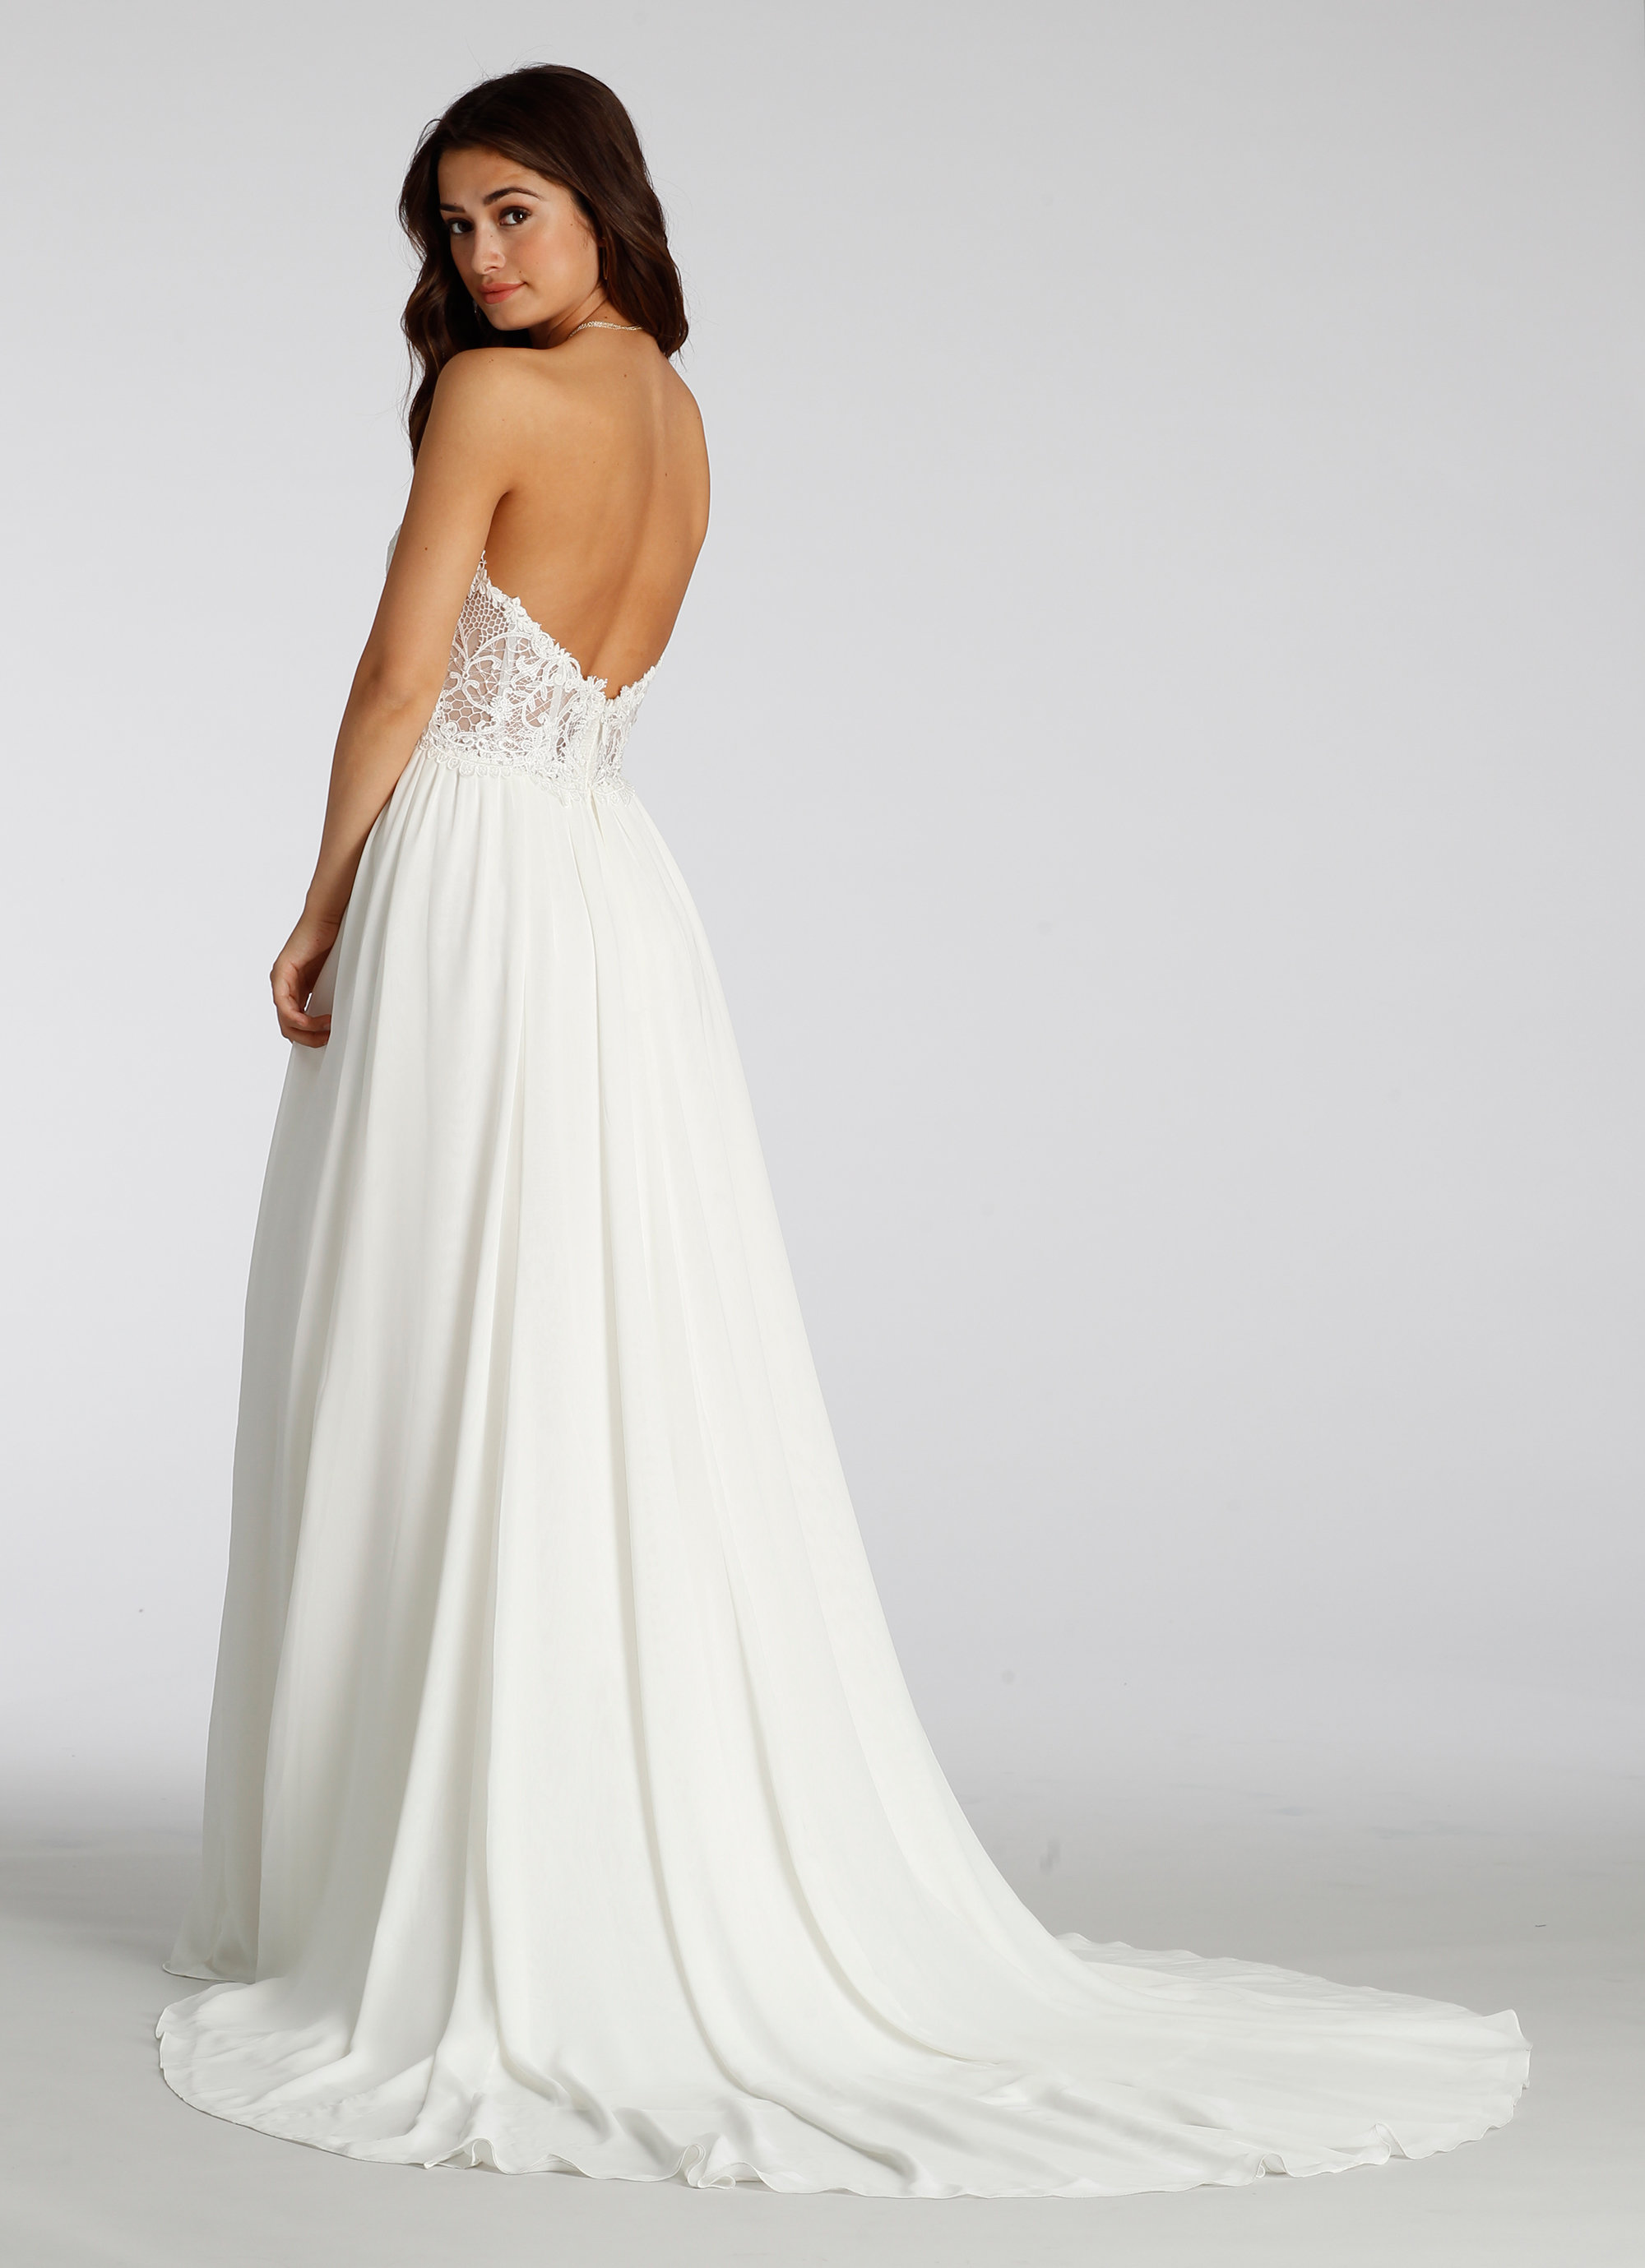 Wedding Dresses Jefferson St Dallas Tx : Ivory chiffon and lace a line bridal gown natural waist bodice